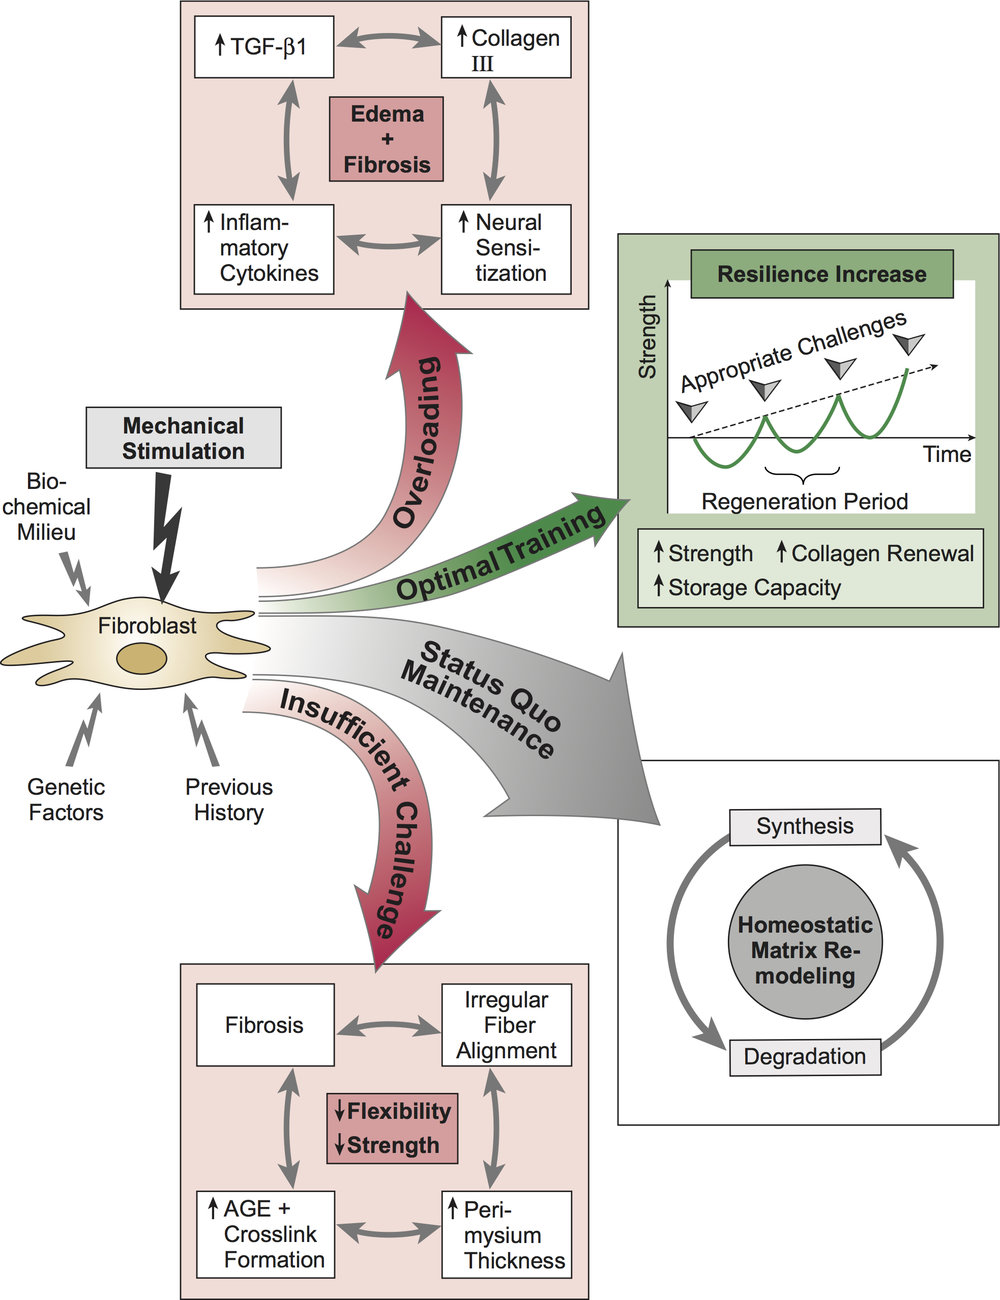 TGF-Β1 PLAYS A ROLE IN TISSUE REMODELING, AS A THERAPEUTIC INTERVENTION MASSAGE THERAPY HAS THE POTENTIAL TO ATTENUATE TGF-Β1 INDUCED FIBROBLAST TO MYOFIBROBLAST TRANSFORMATION  DAVIS'S LAW, ATTRIBUTION: WWW.FASCIALNET.COM